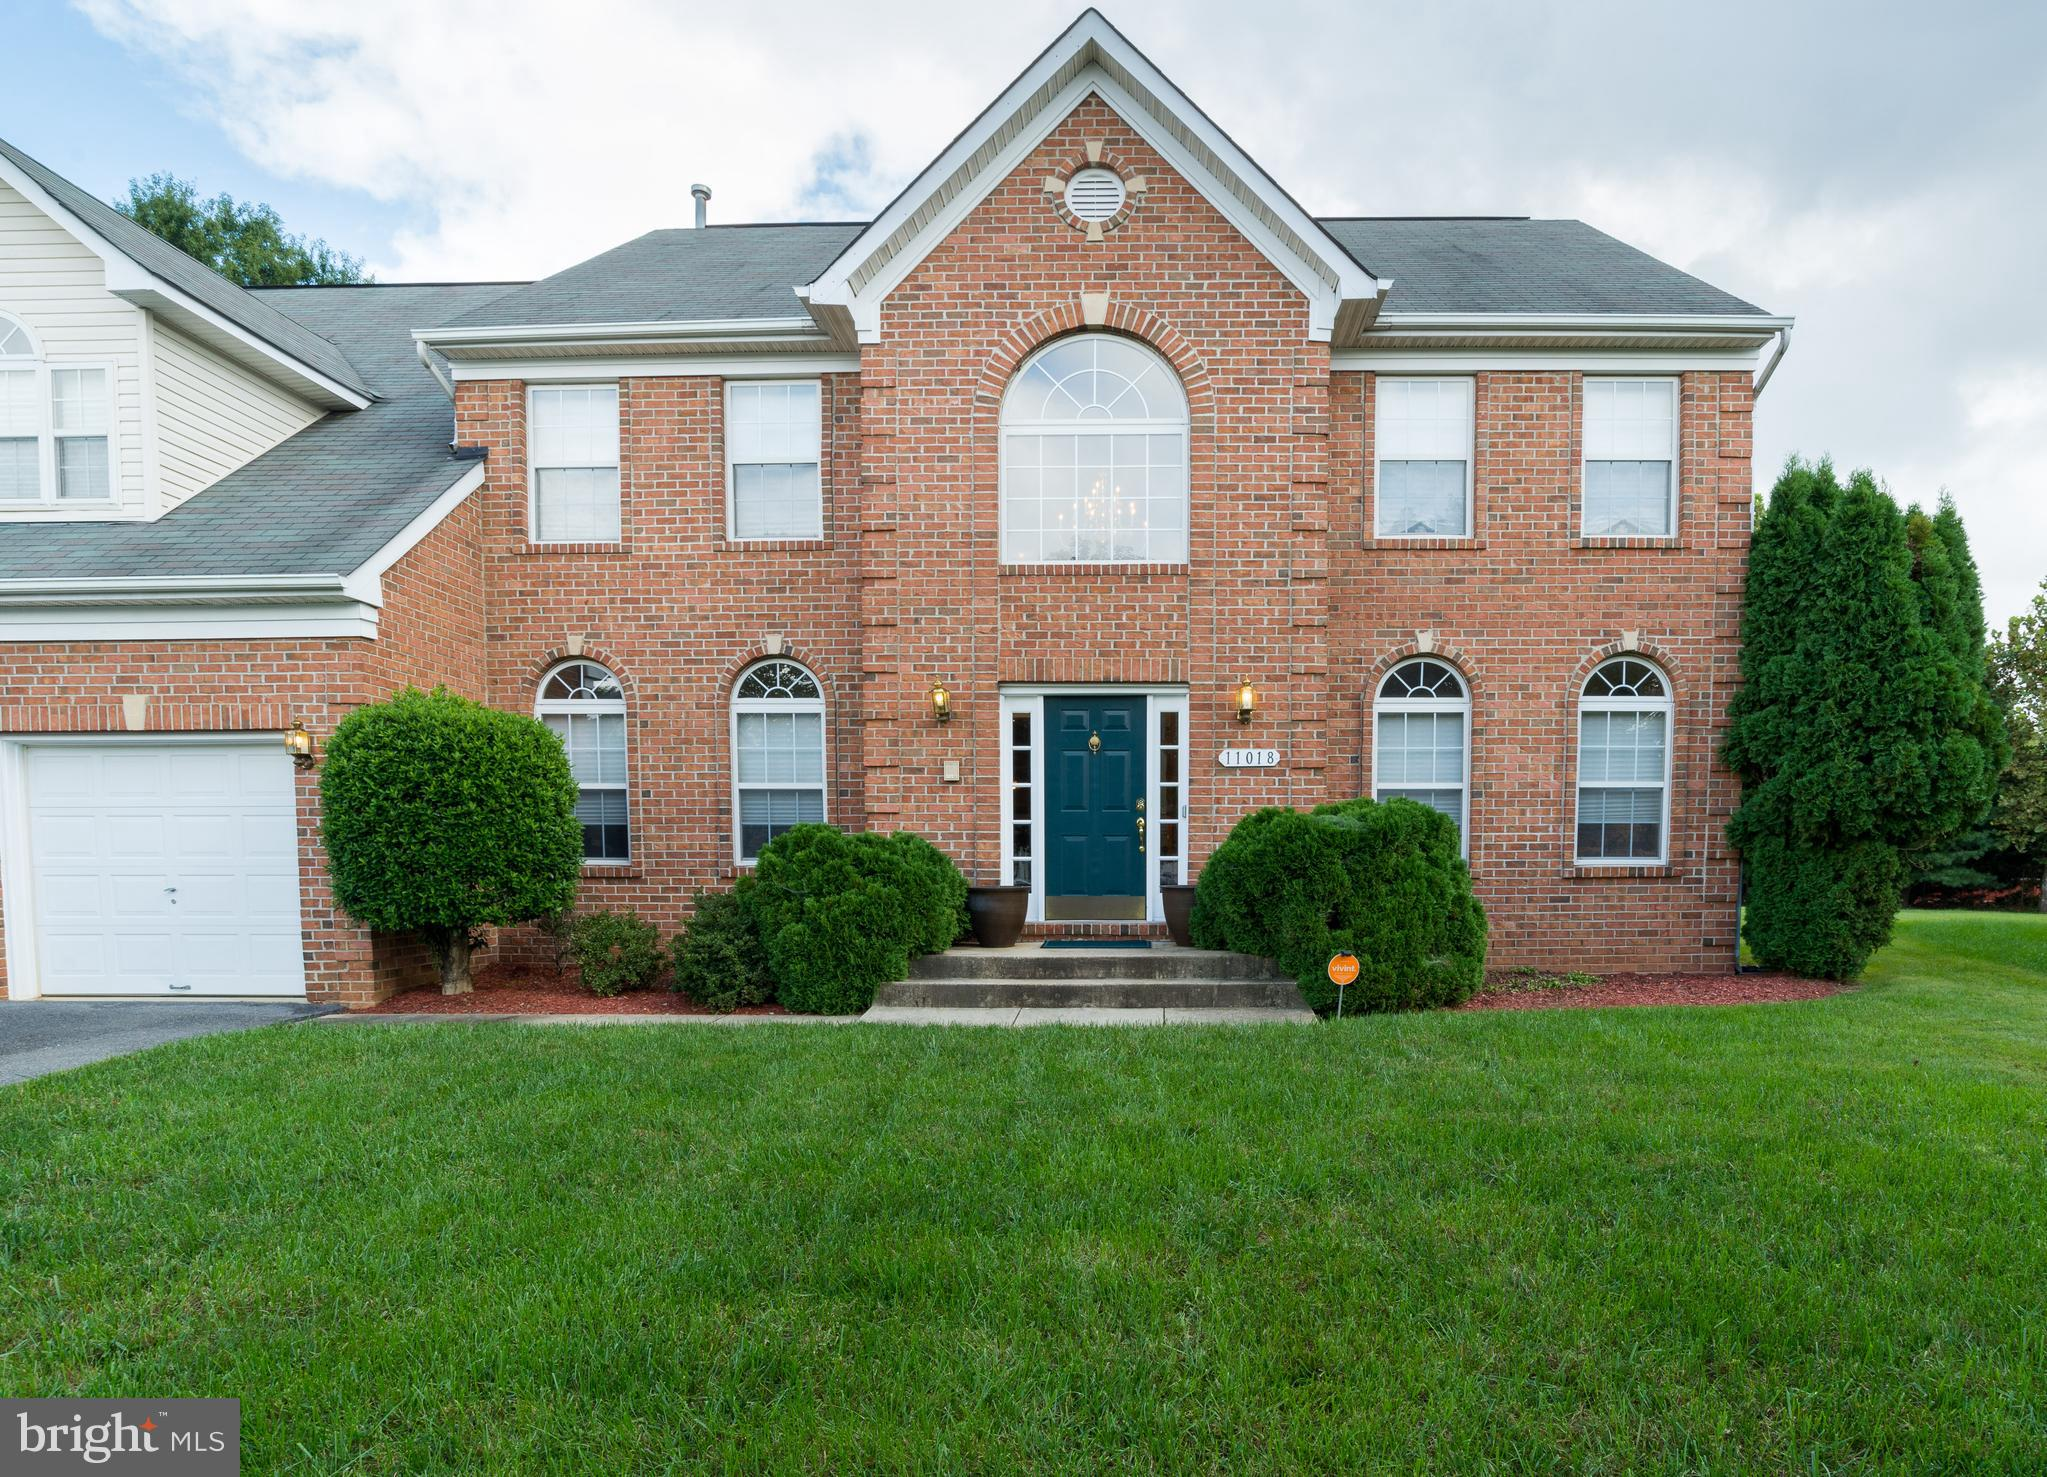 11018 Spring Forest Way, Fort Washington, MD, 20744